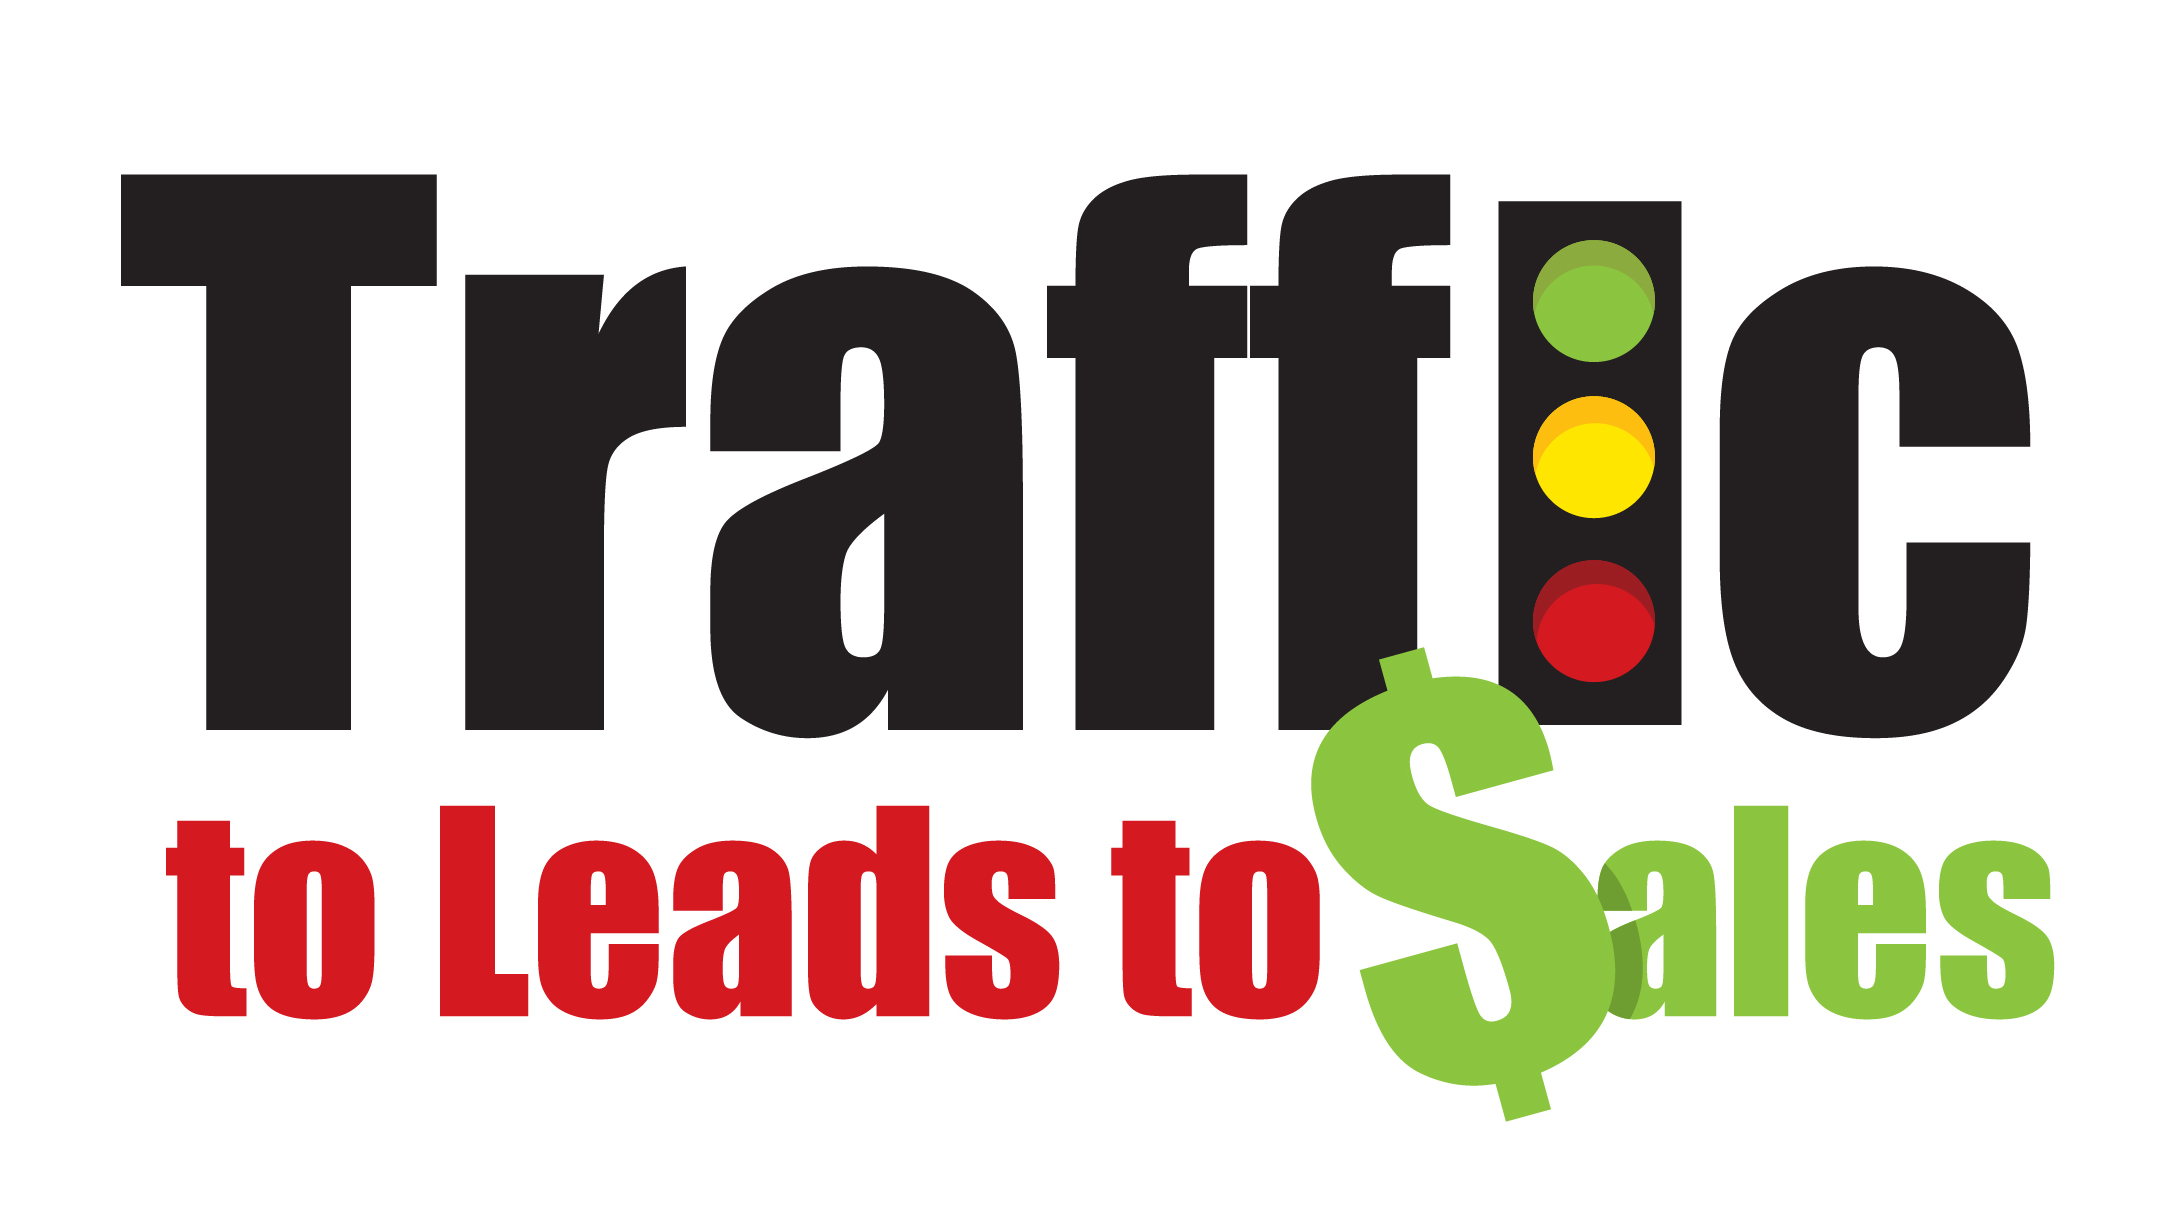 Give you a site where you can get GUARANTEED SALES AND LEADS